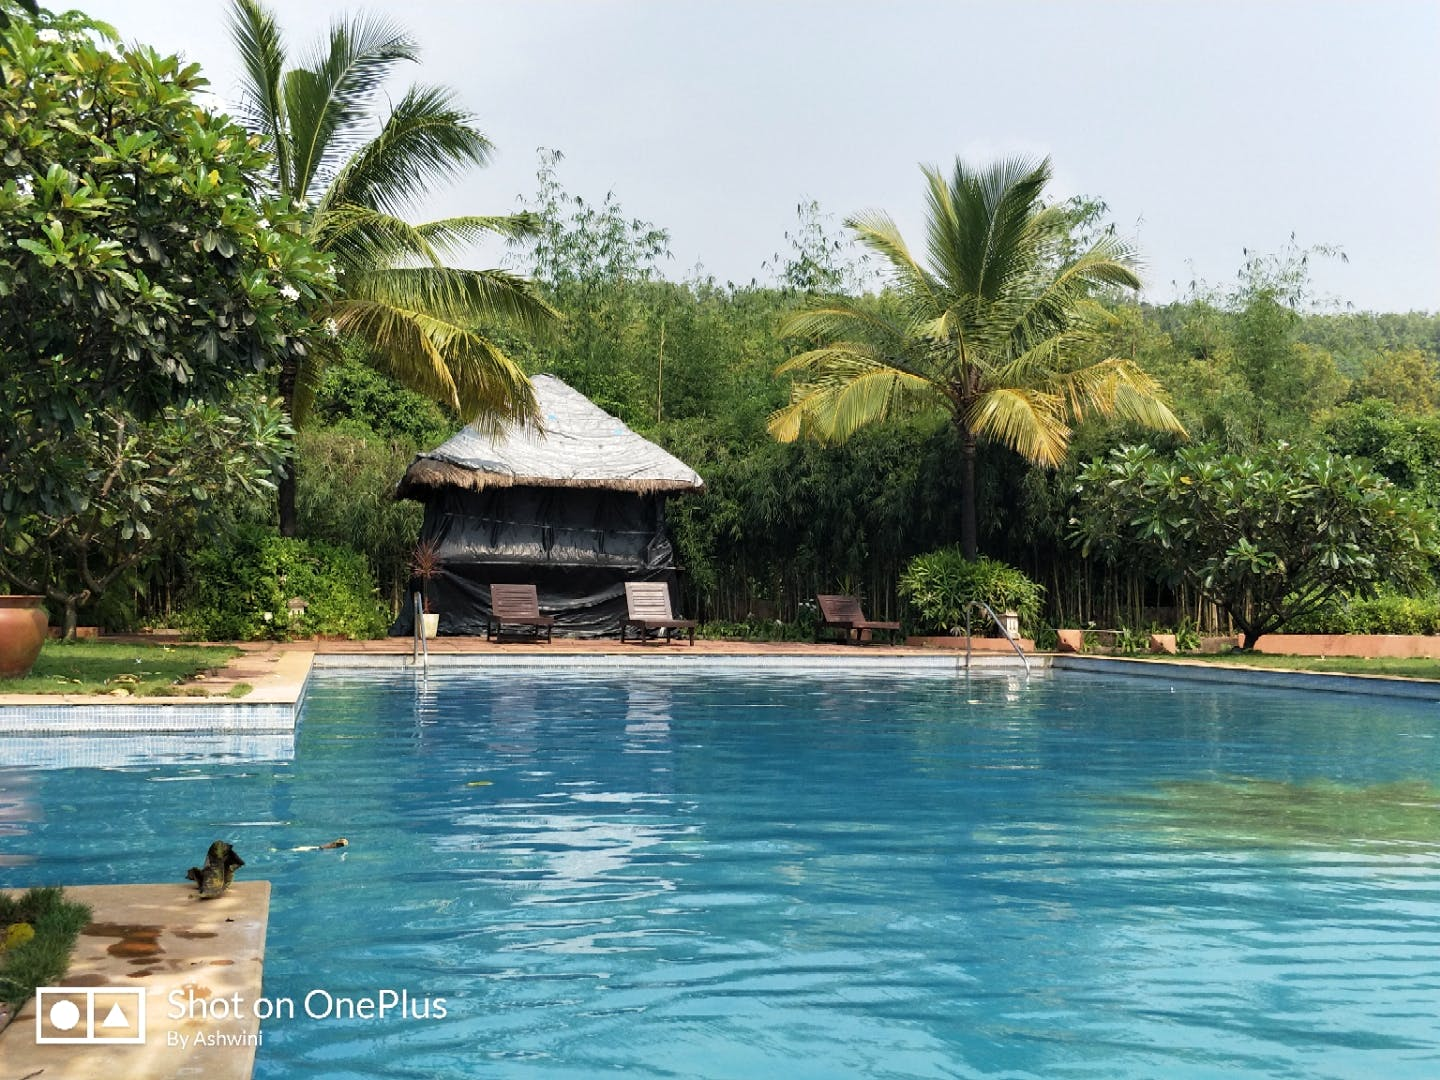 Swimming pool,Natural landscape,Property,Leisure,Vacation,Resort,Palm tree,Water,Tropics,Tree